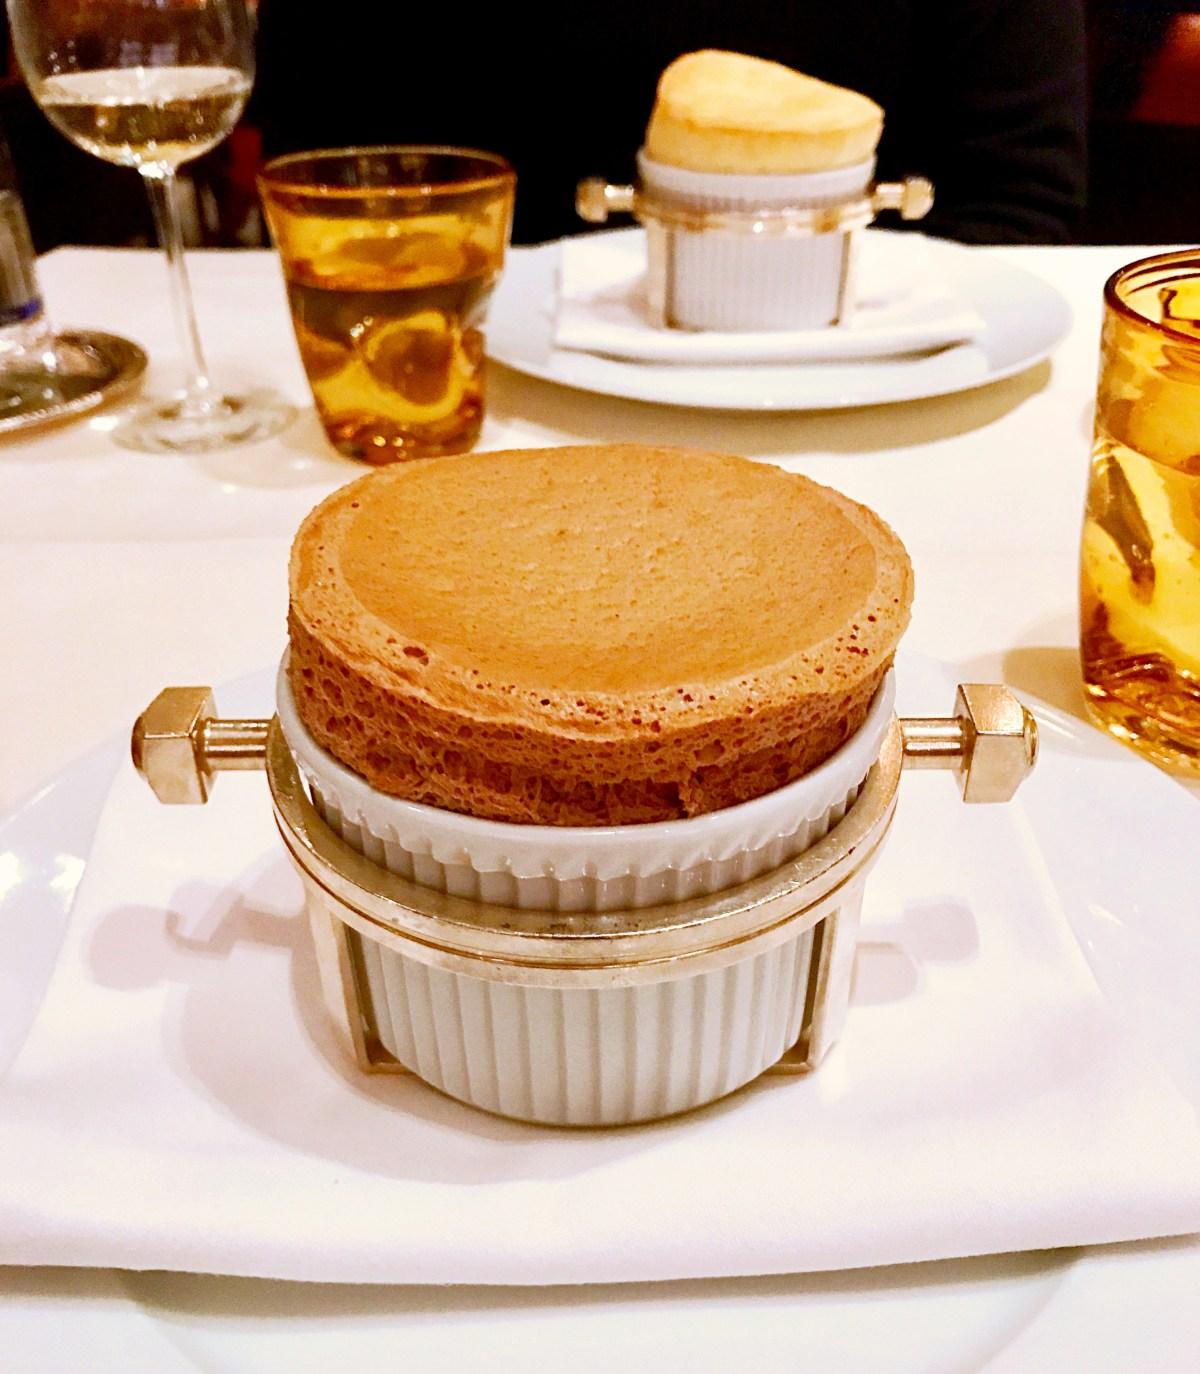 Chocolate Soufflé at The Dorchester - Best Desserts In London - The LDN Diaries